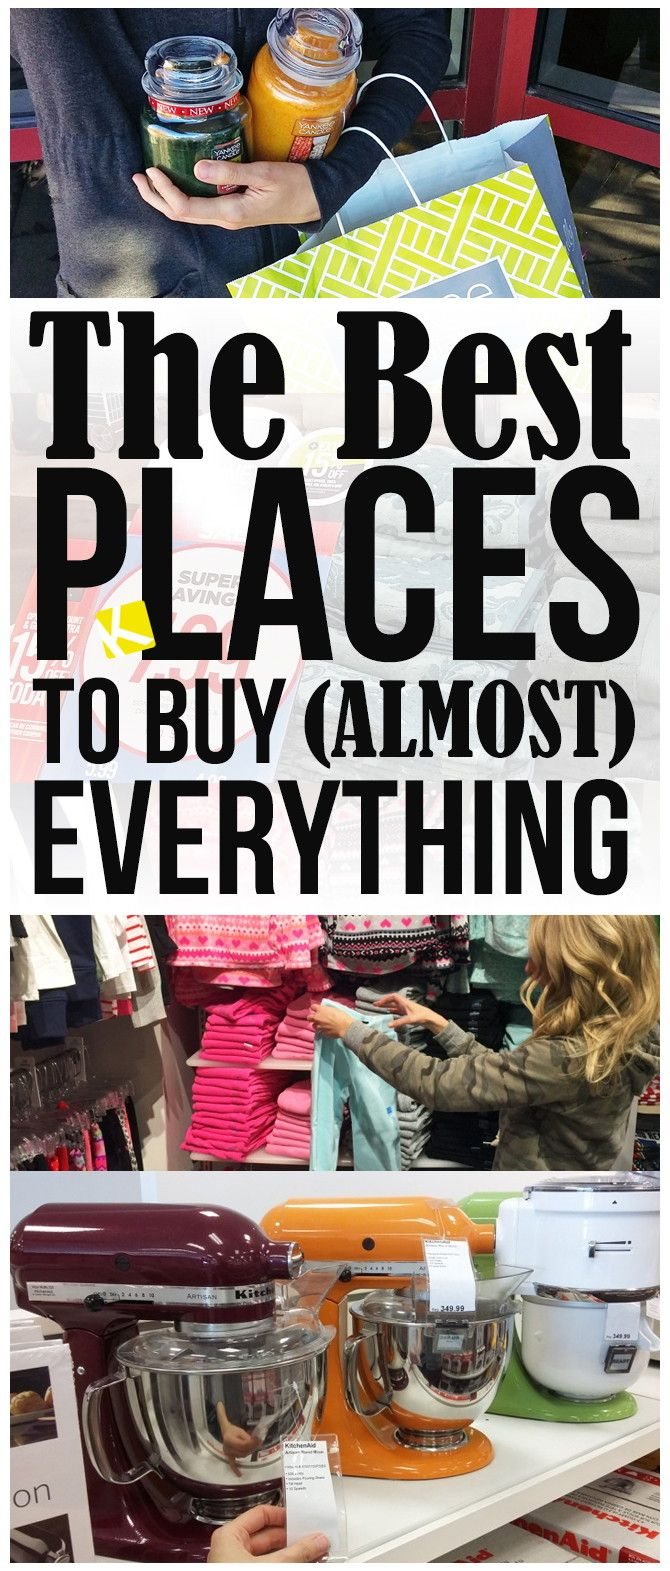 The Best Places To Buy (Almost) Everything - The Krazy Coupon Lady - Diy Crafts